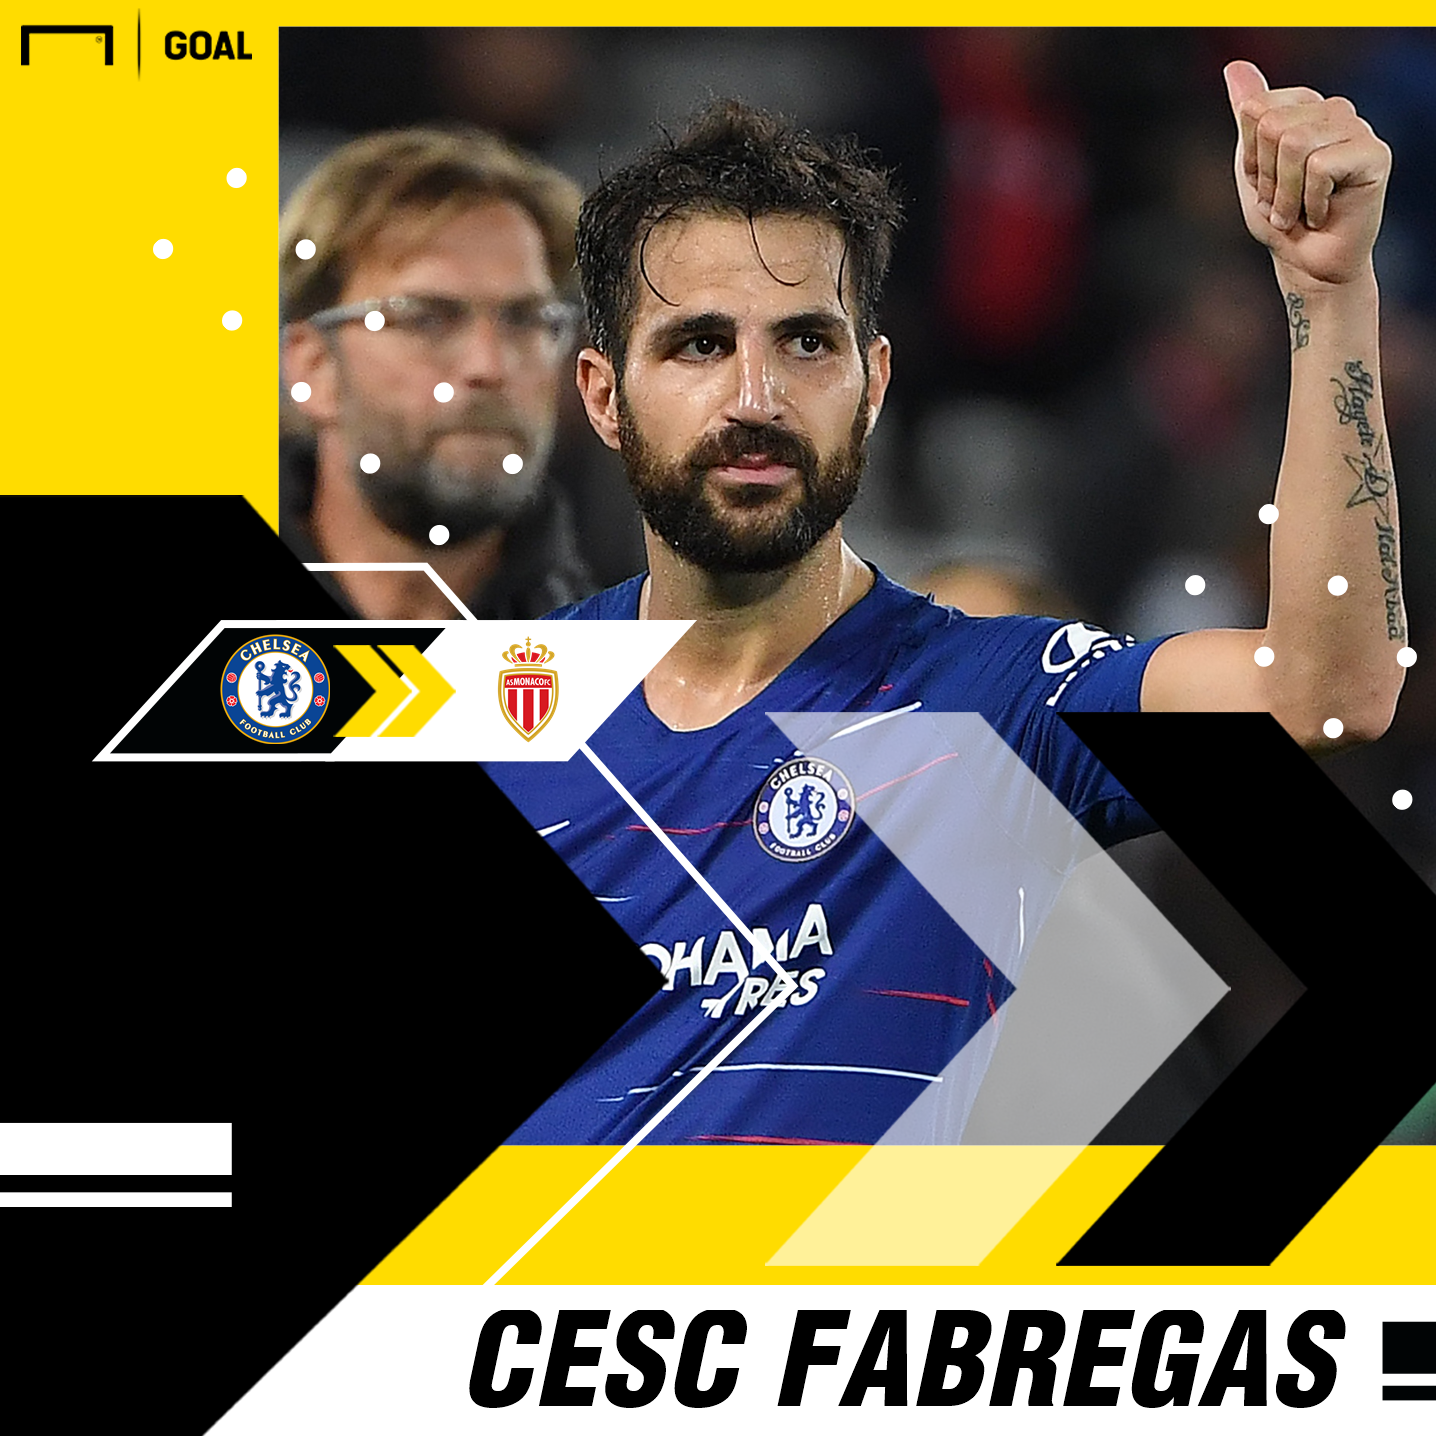 Cesc Fabregas delighted to join Monaco's 'new project'